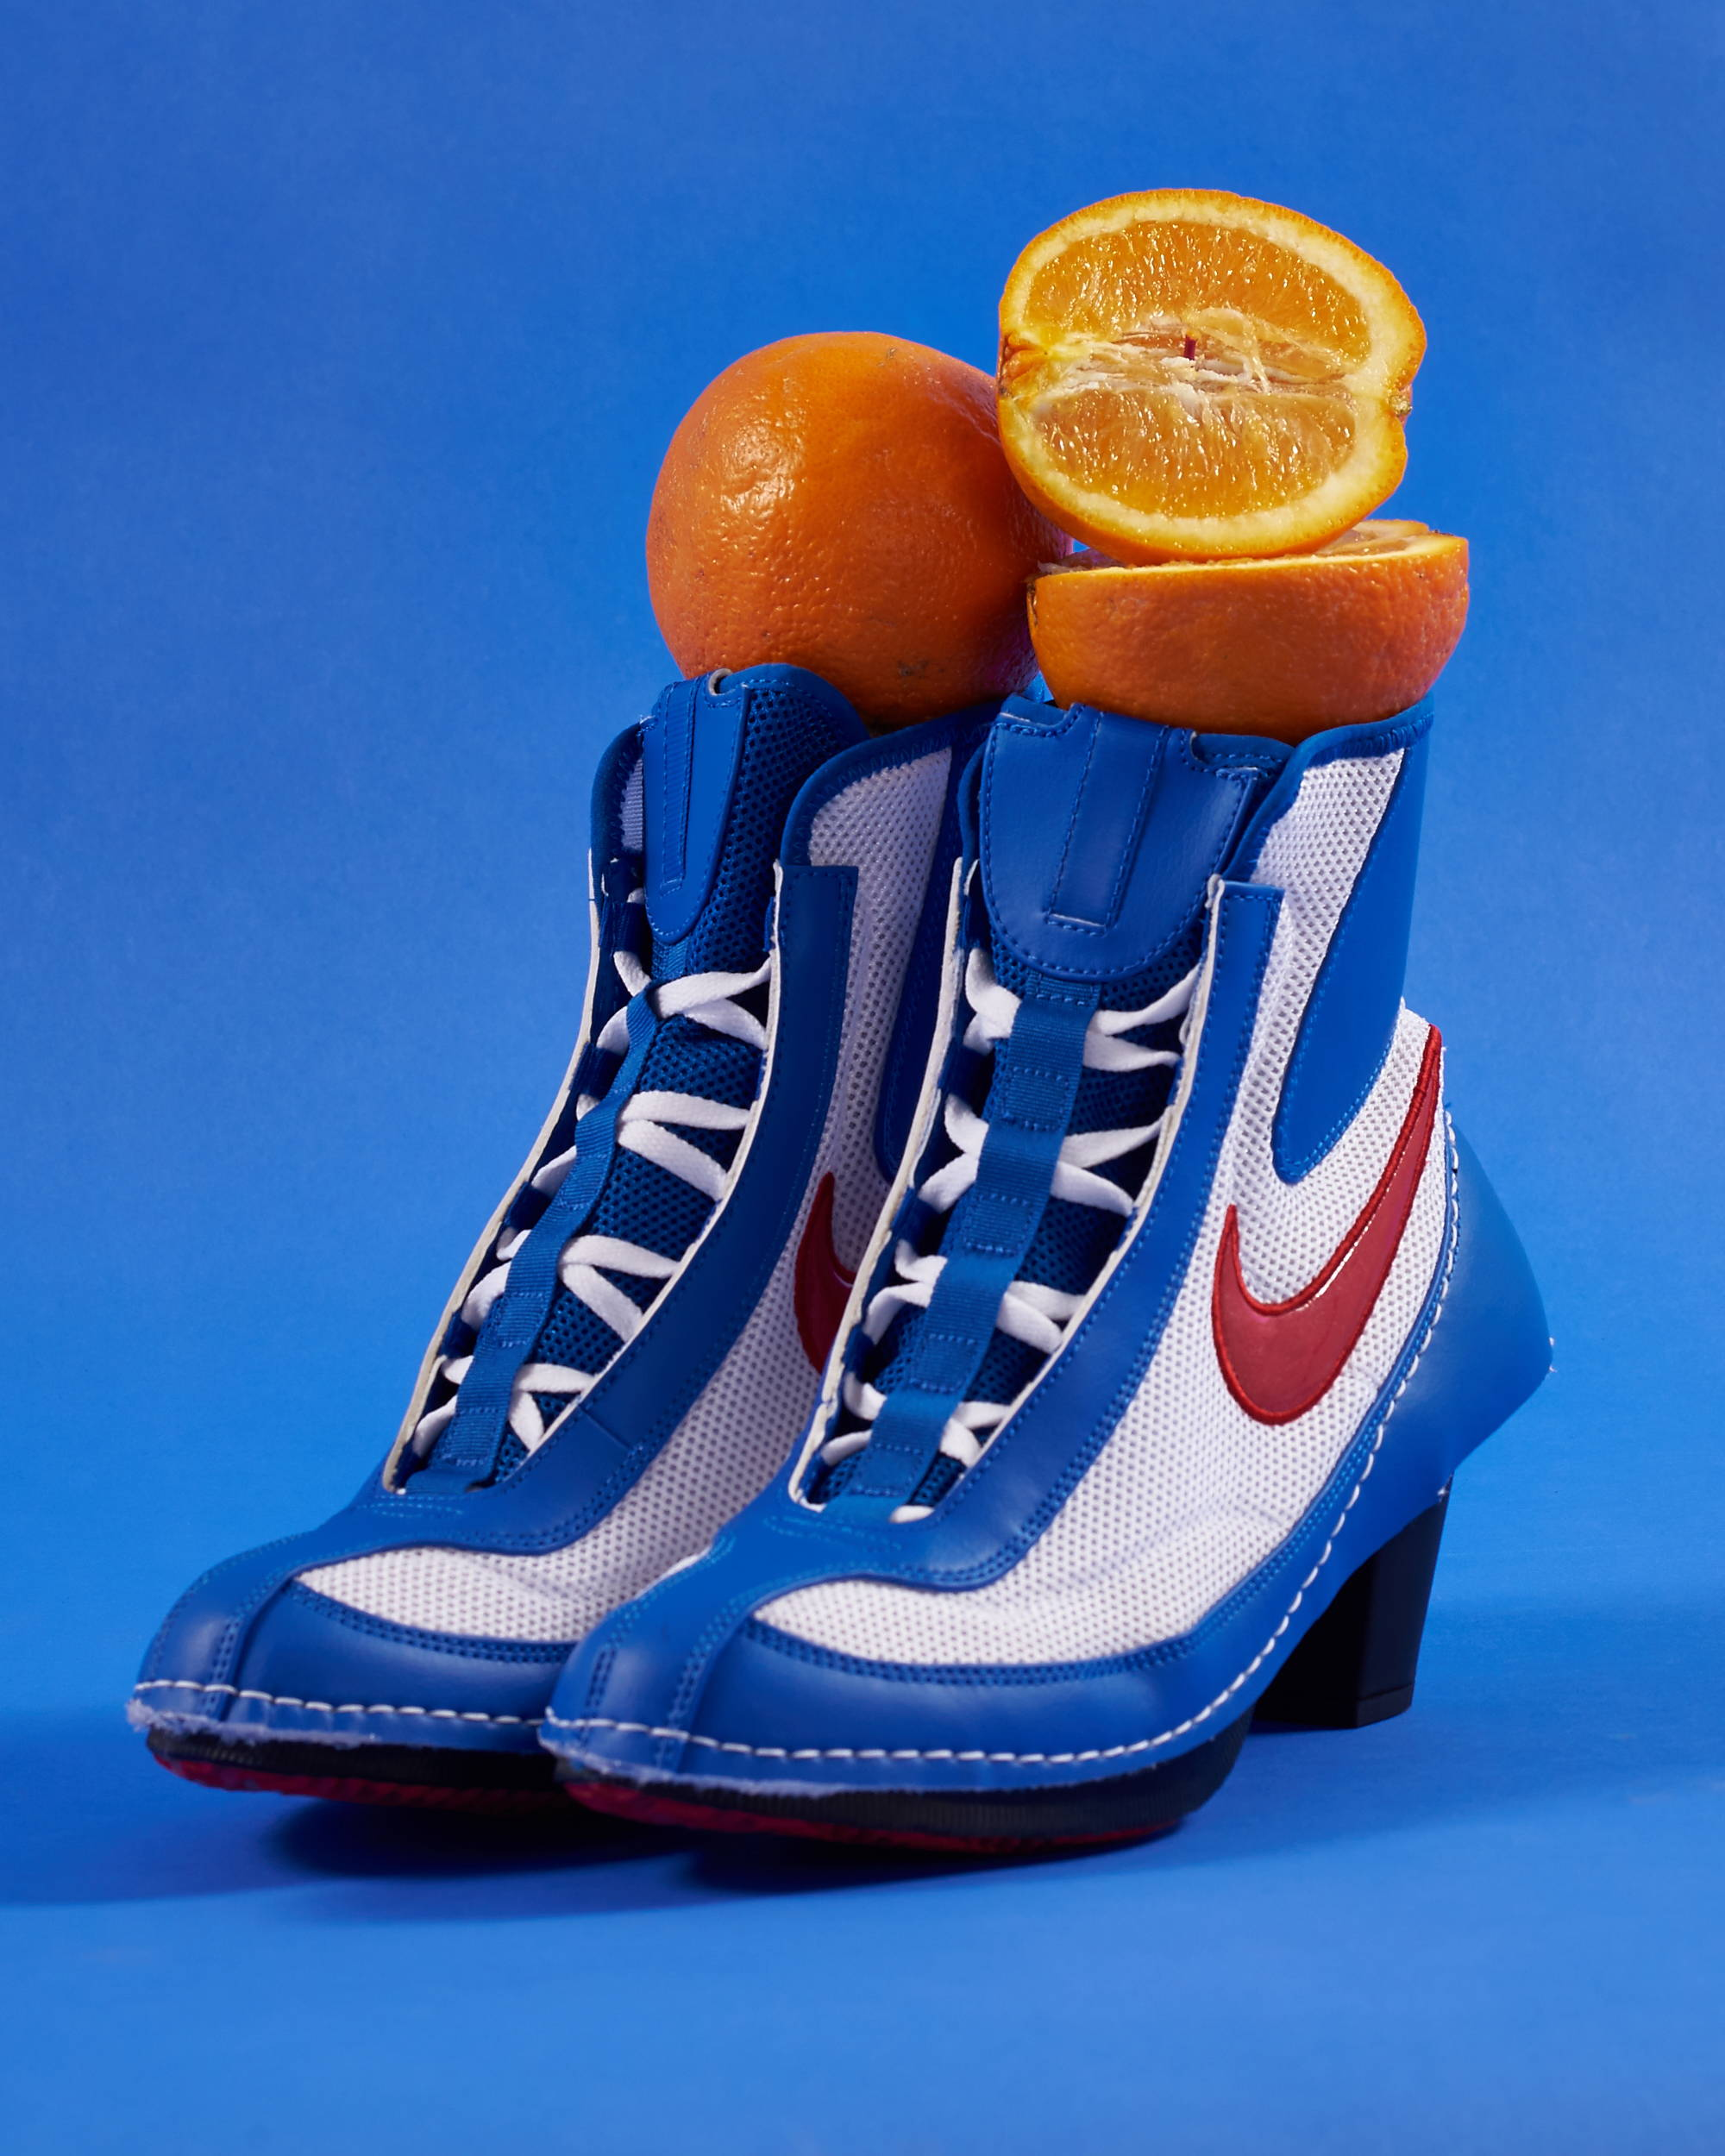 Comme des Garcons x Nike Machomai boxing boot blue collaboration - Hlorenzo